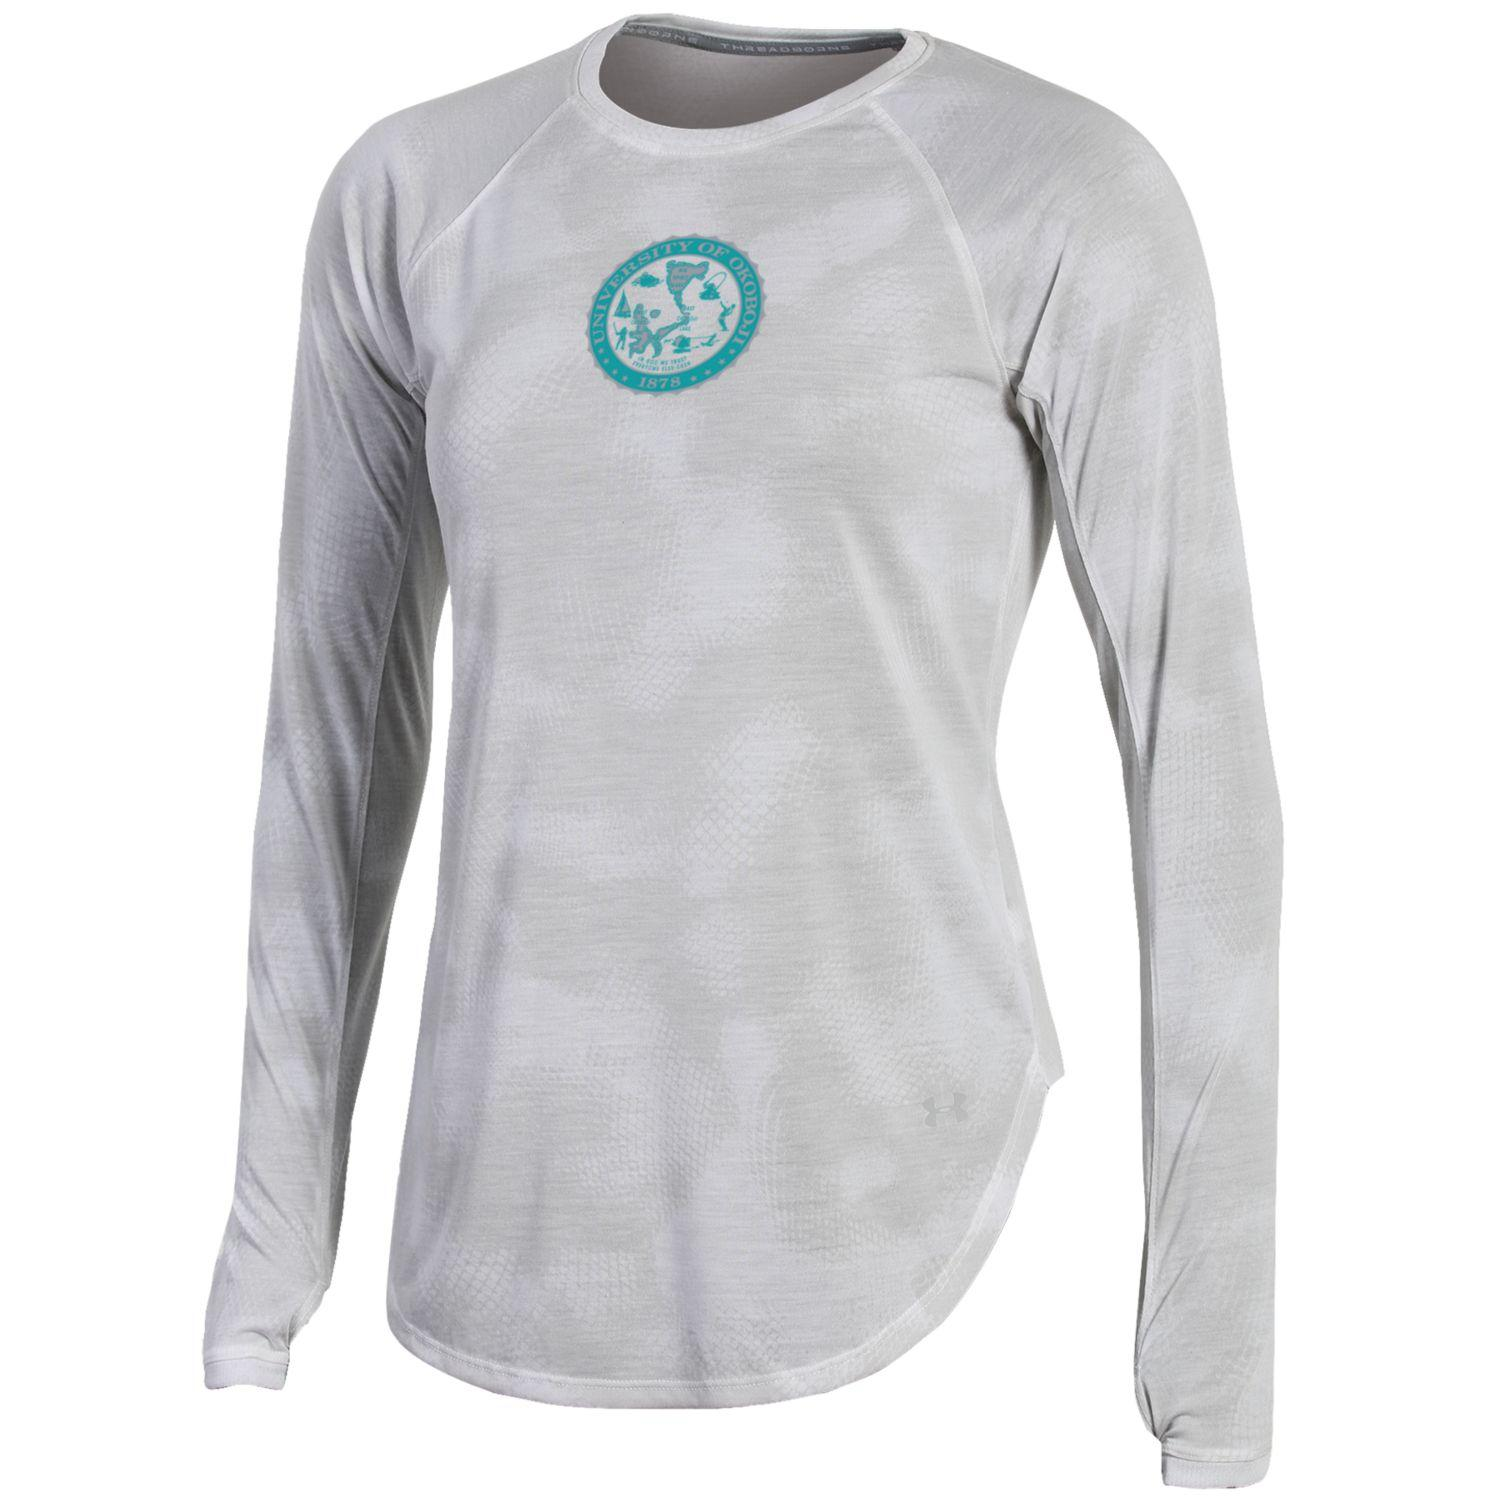 Under Armour Women's Threadborne Long-sleeved Tee